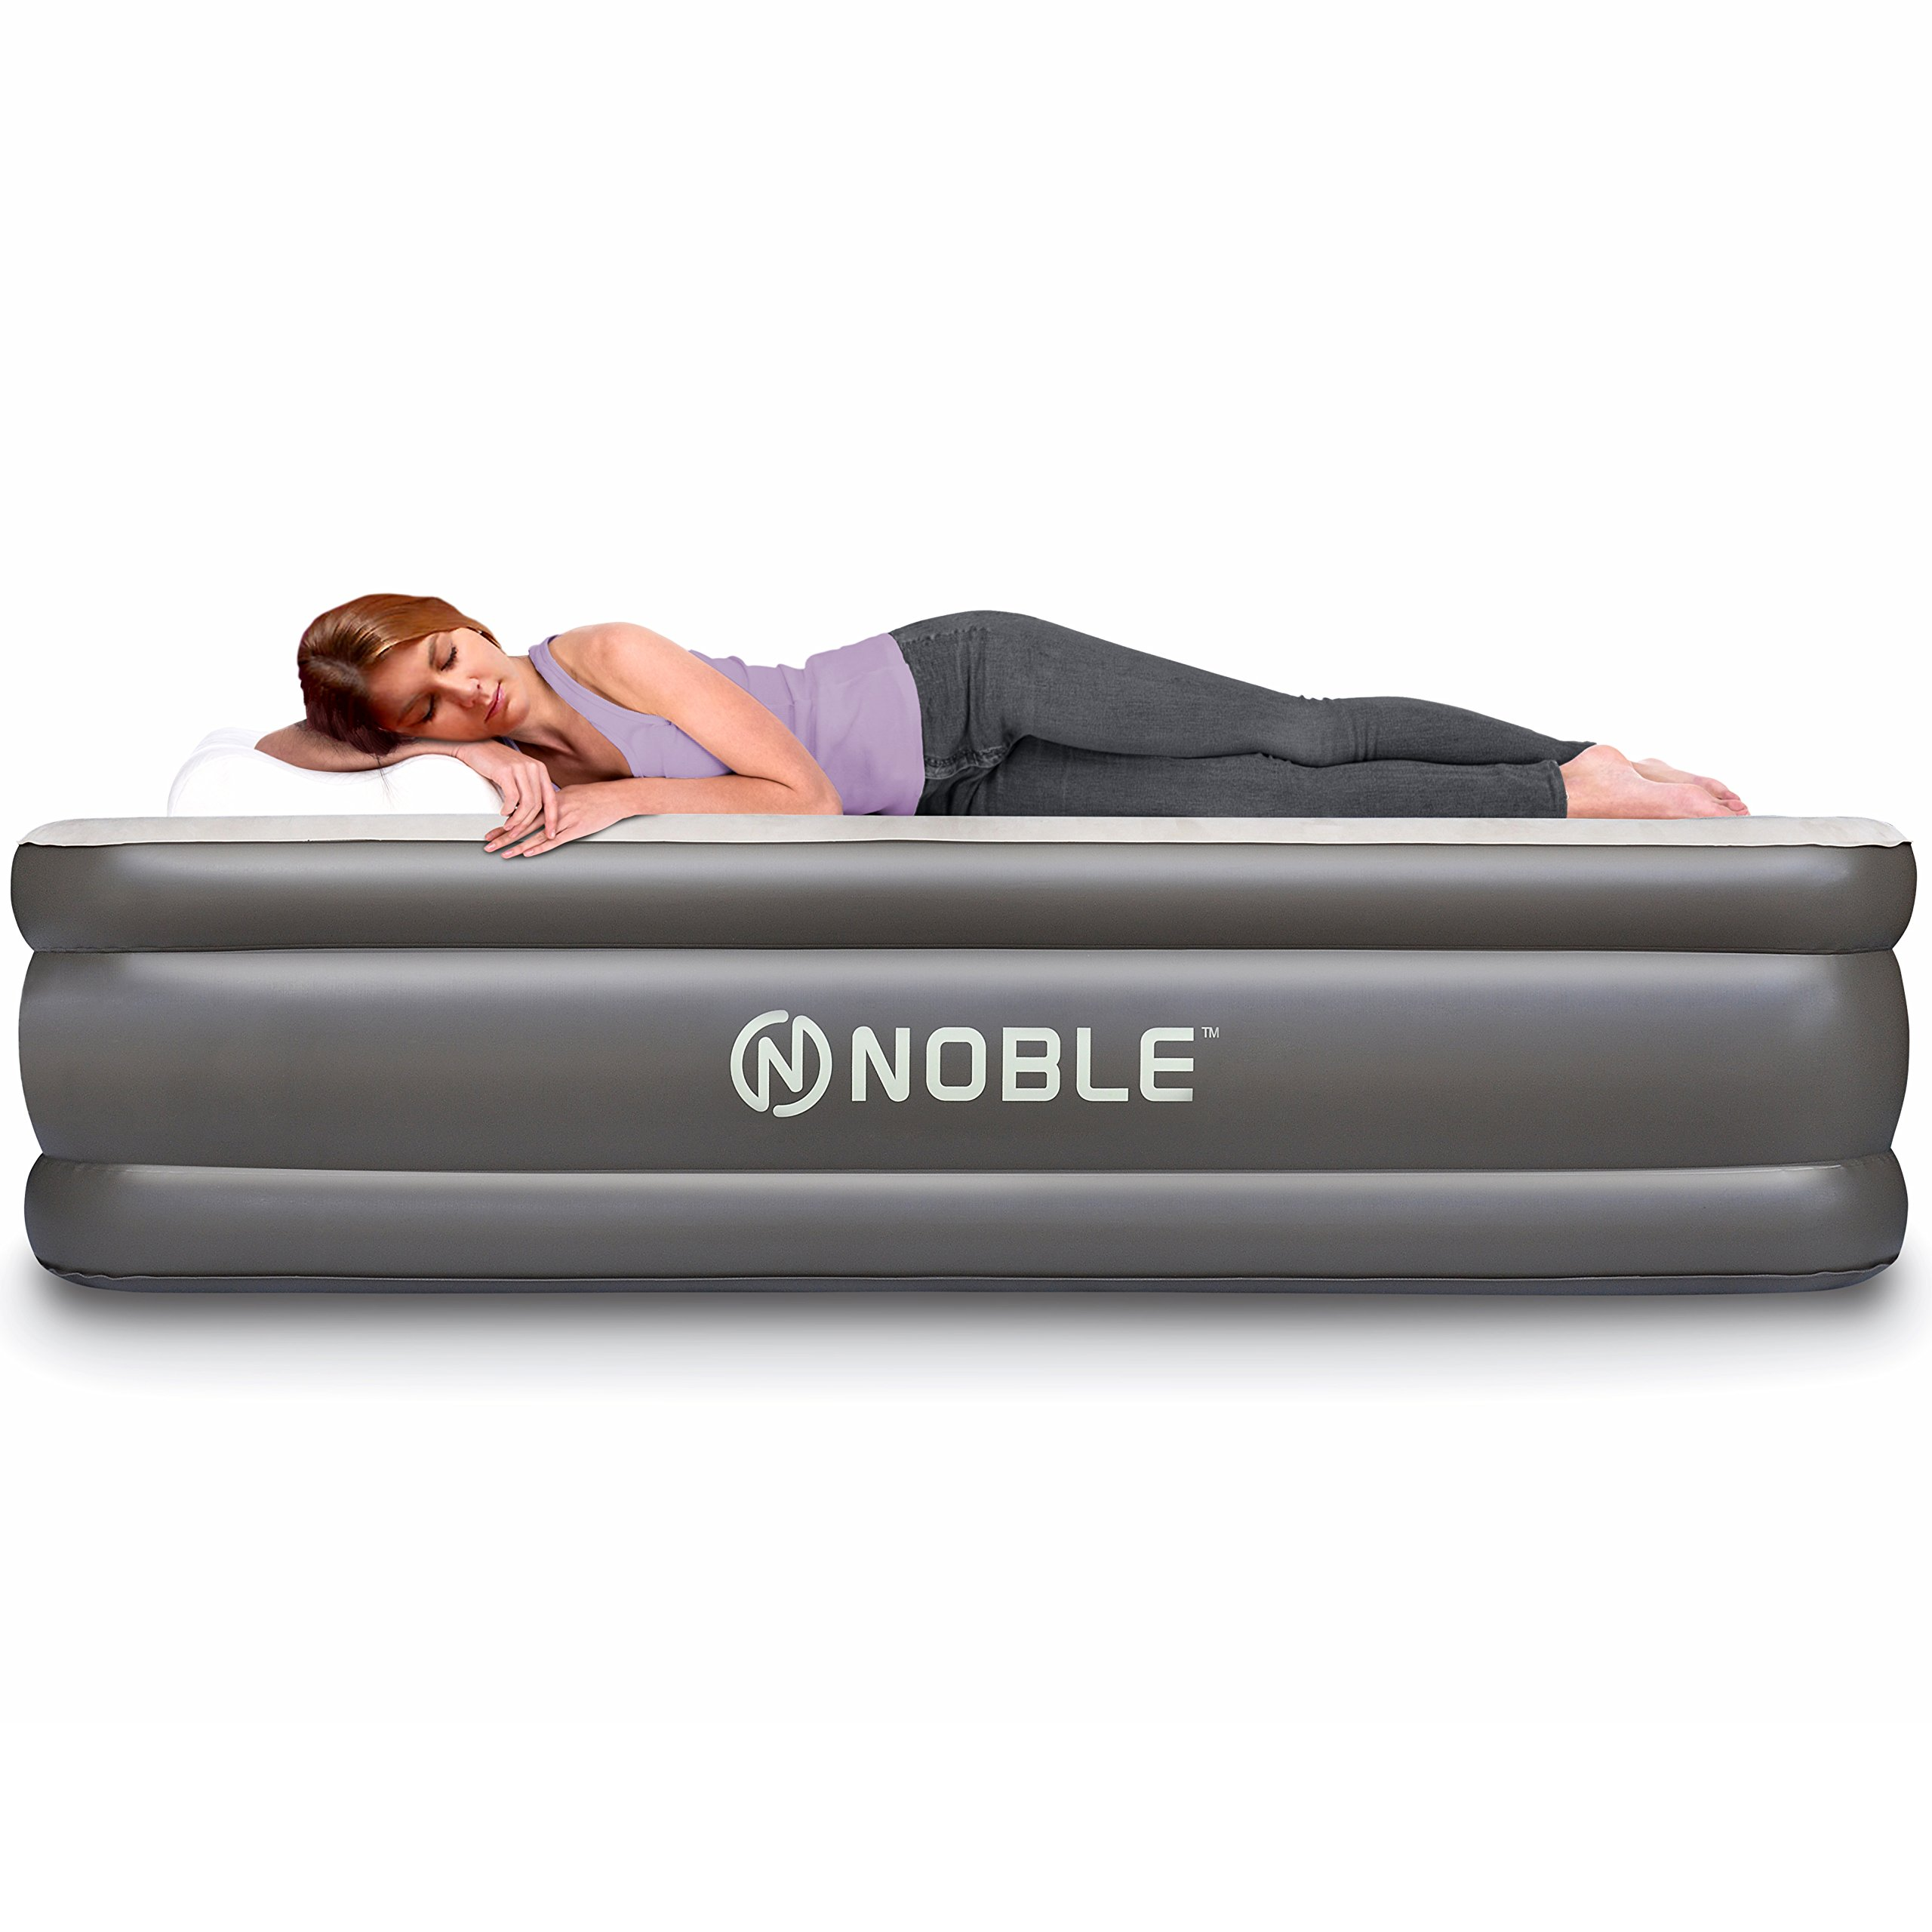 Noble QUEEN SIZE Comfort DOUBLE HIGH Raised Air Mattress - Top Inflatable Airbed with Built-in Pump - Elevated Raised Air Mattress Quilt Top & 1-year GUARANTEE by Noble